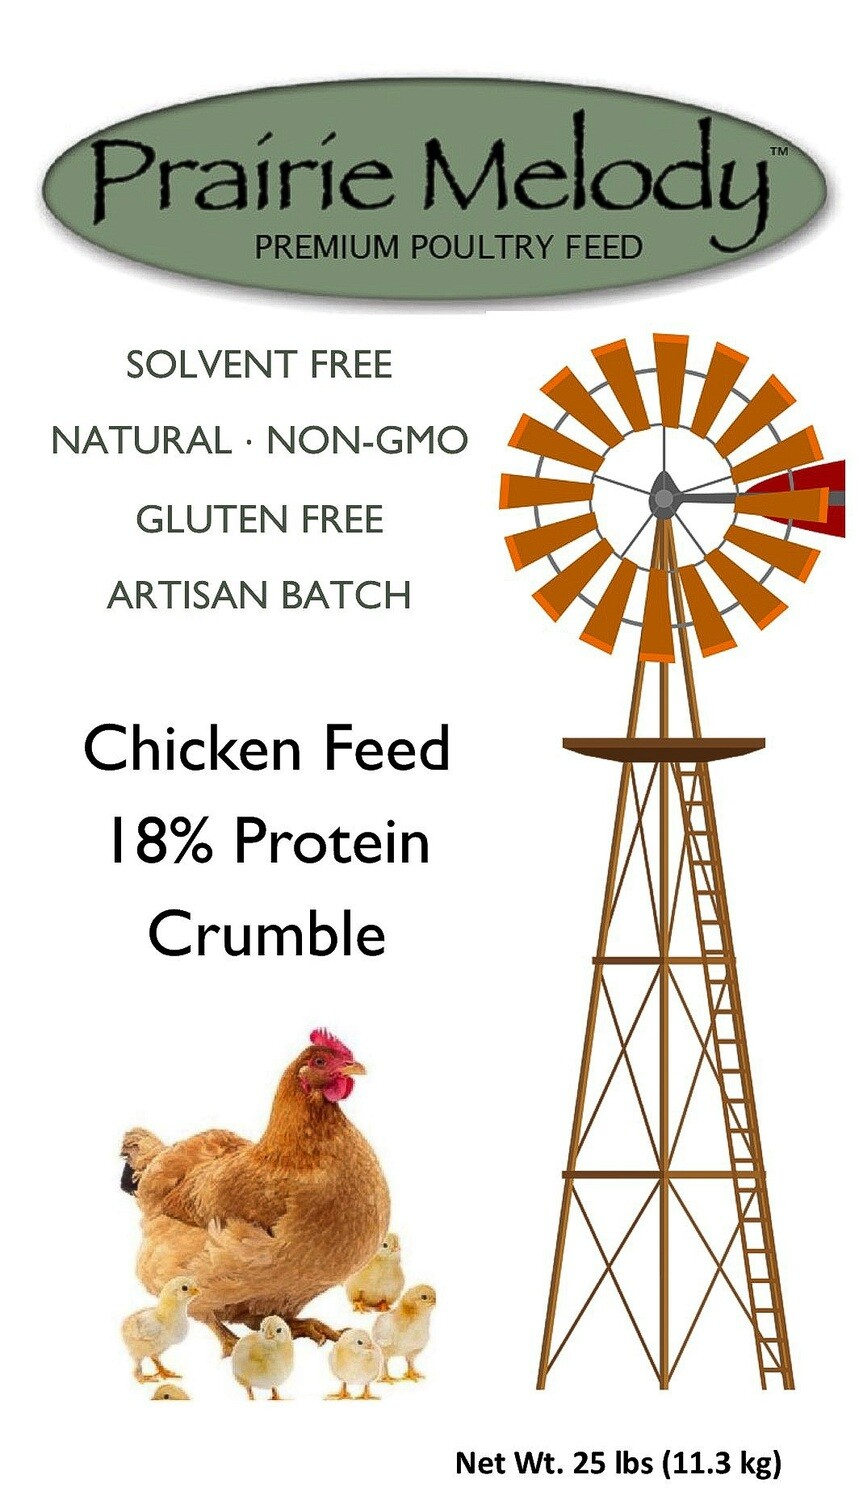 Prairie Melody Poultry Feed - Gluten Free, NonGMO, Solvent Free - 25 lb